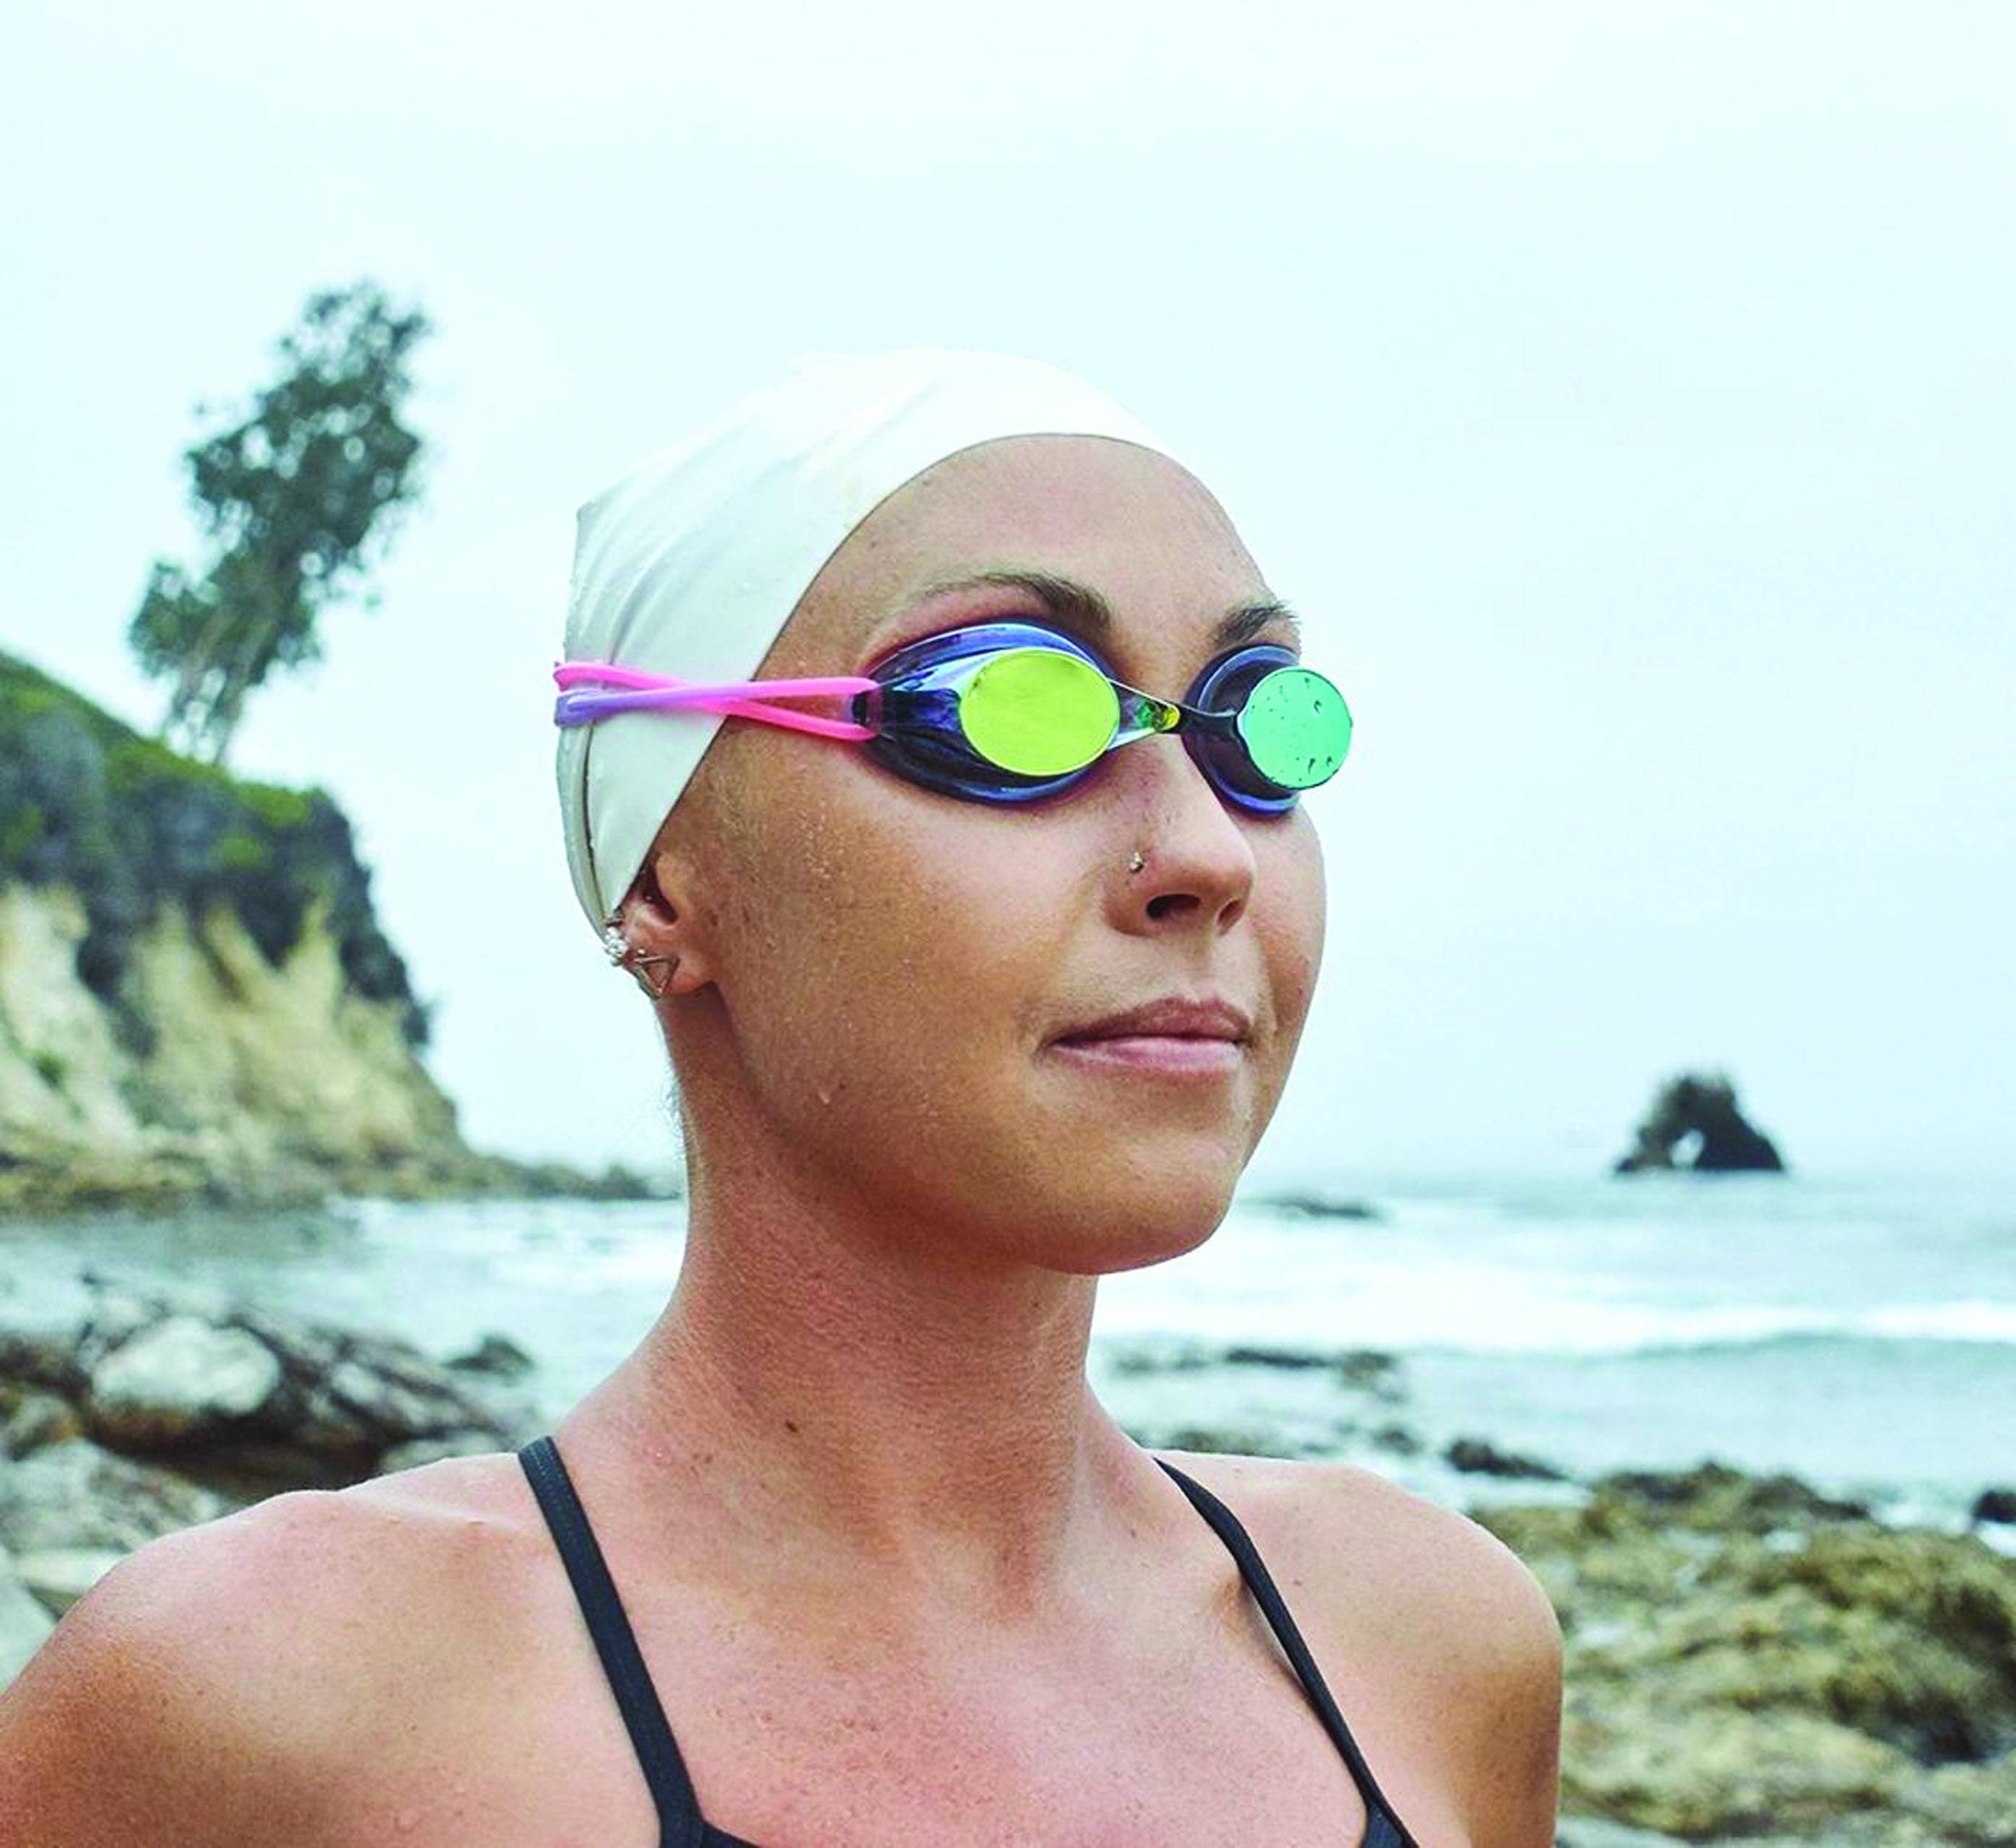 Swimmer wearing a missile swimming goggle